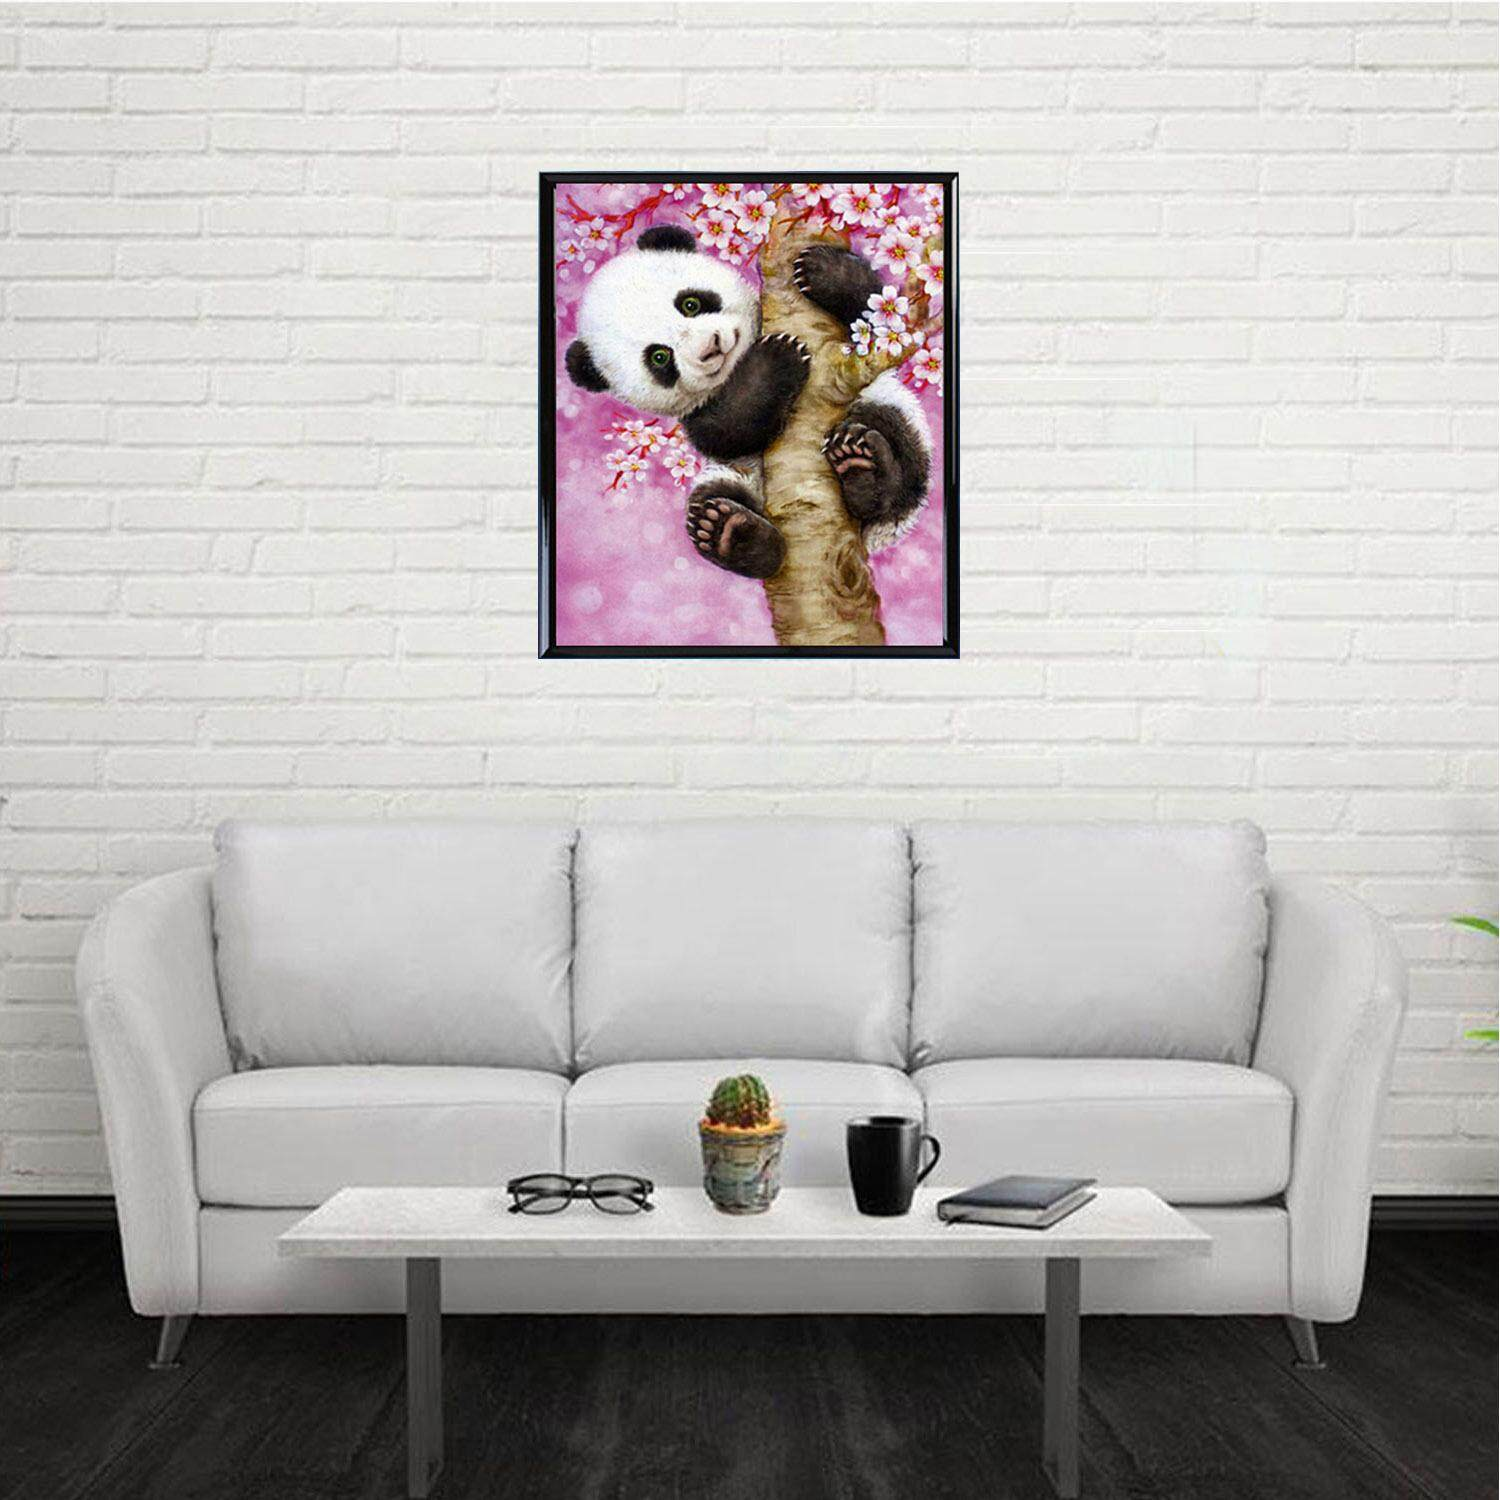 Hình ảnh 5D DIY Panda Tree Pattern Diamond Rhinestone Painting Part Embroidery Cross Stitch Picture for Home Wall Decor DIY Christmas Birthday Gift - intl